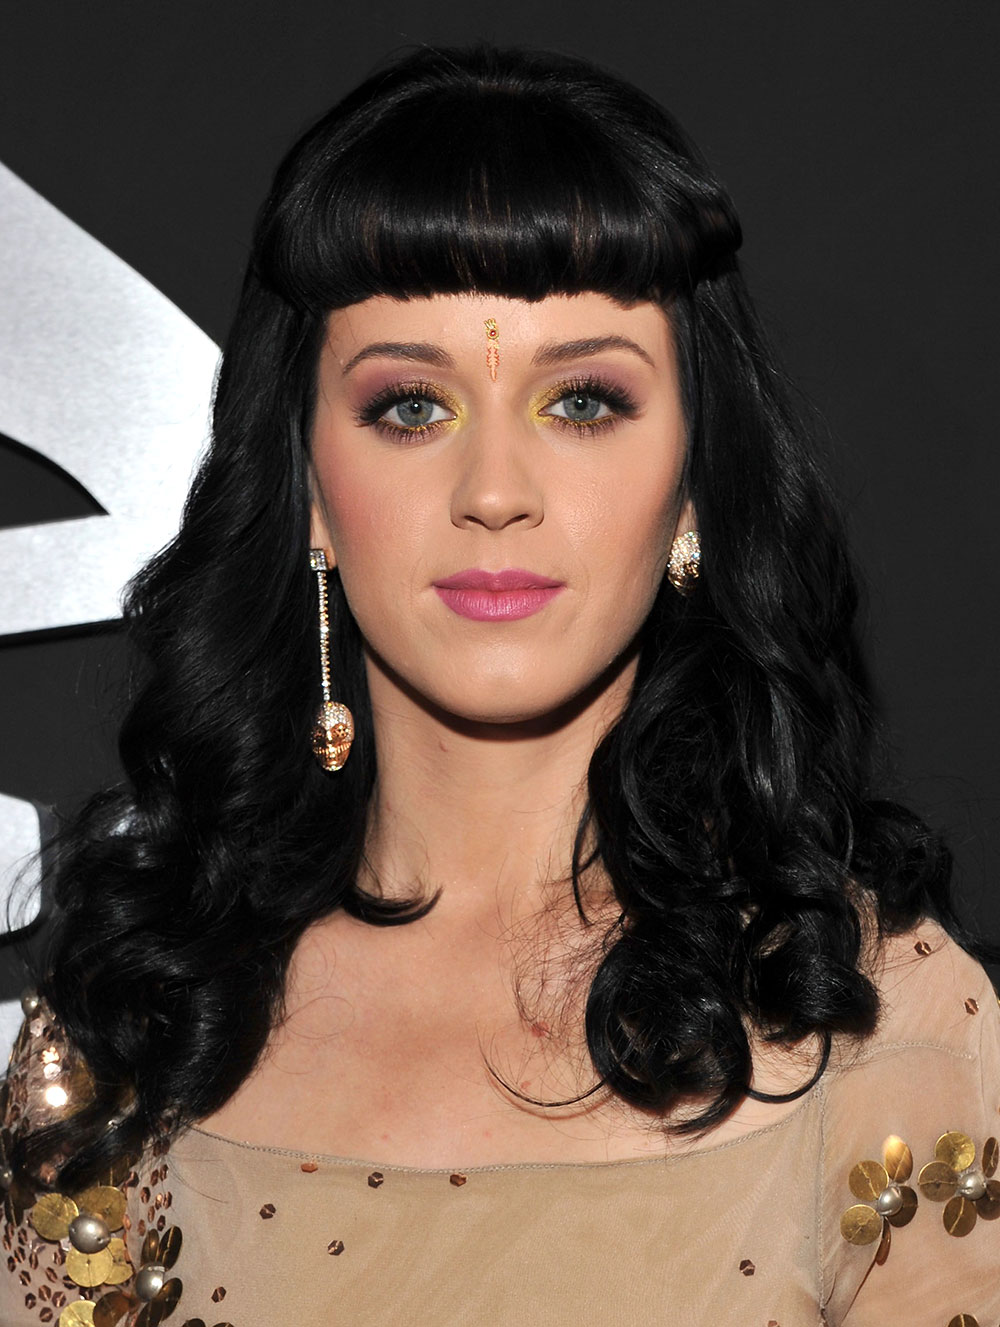 katy-perry-makeup-2010-52nd-annual-grammys-awards